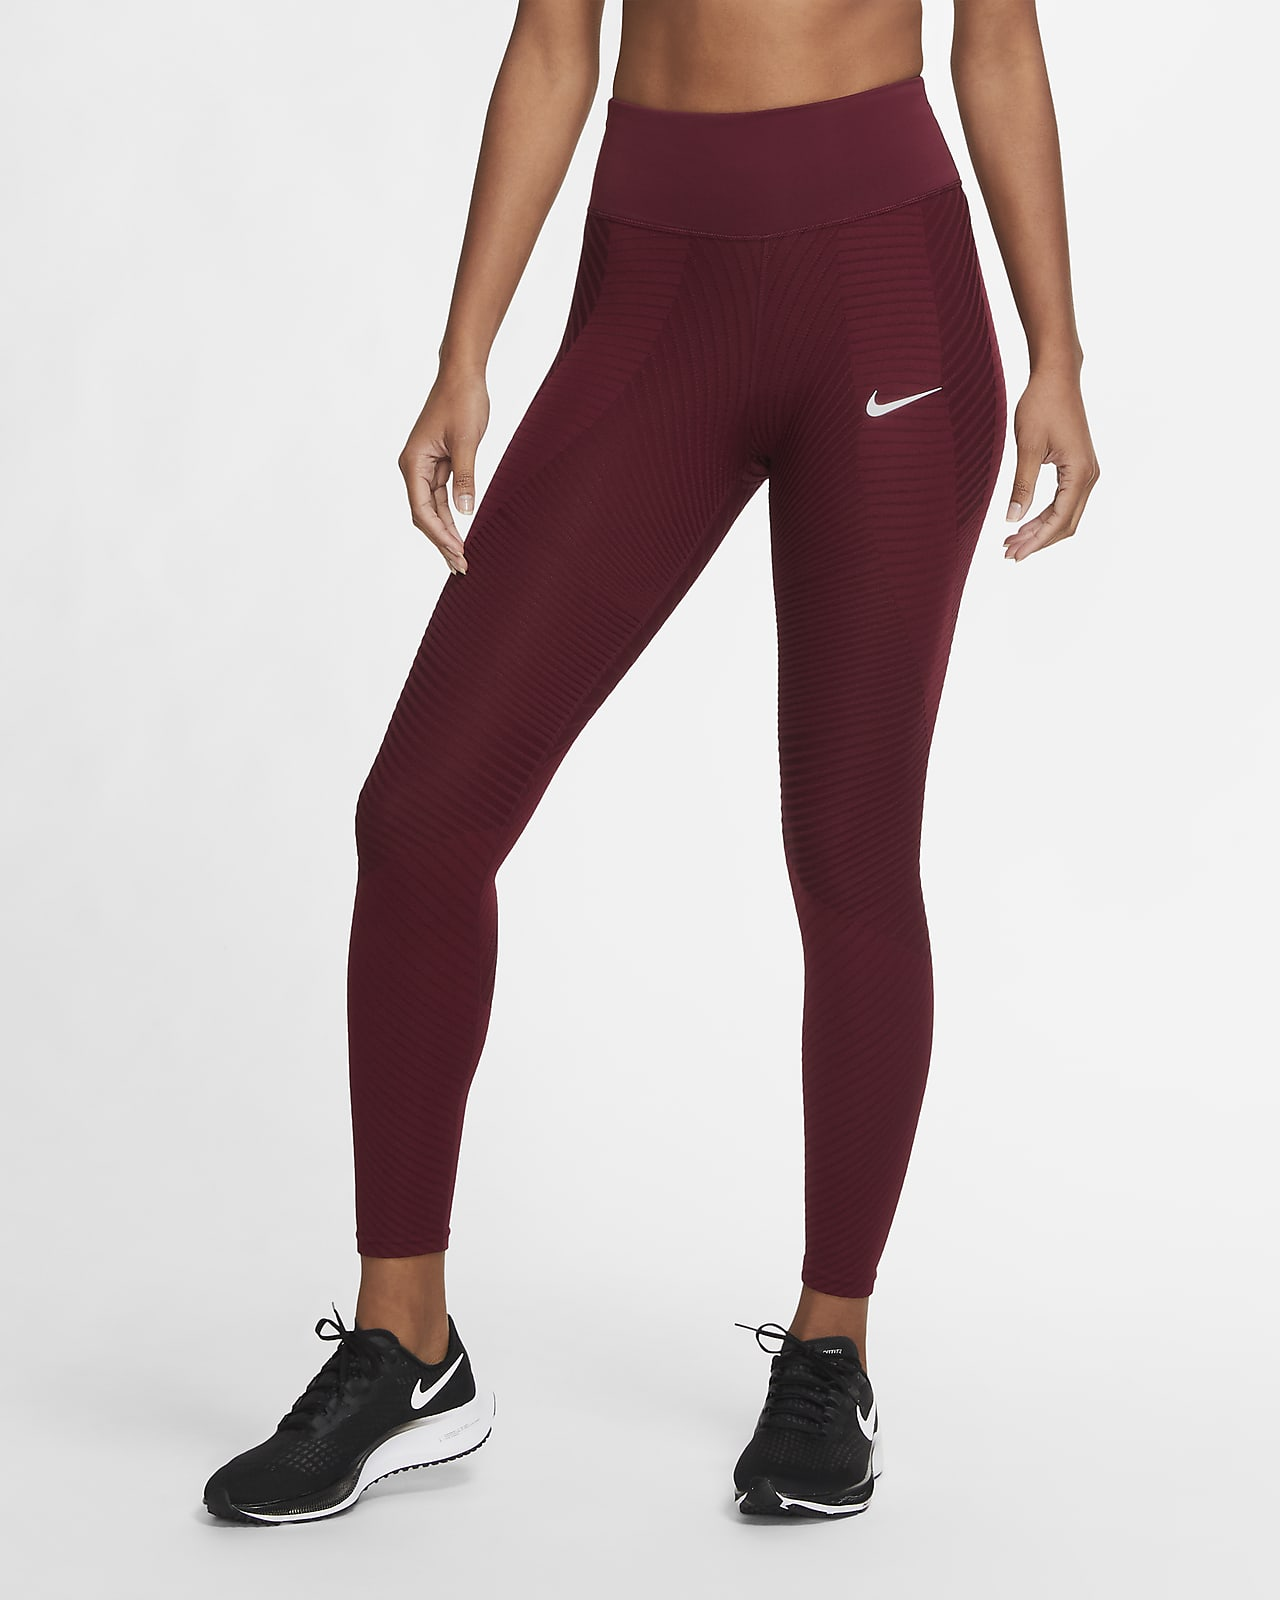 Nike Epic Luxe Women's Textured Running Leggings